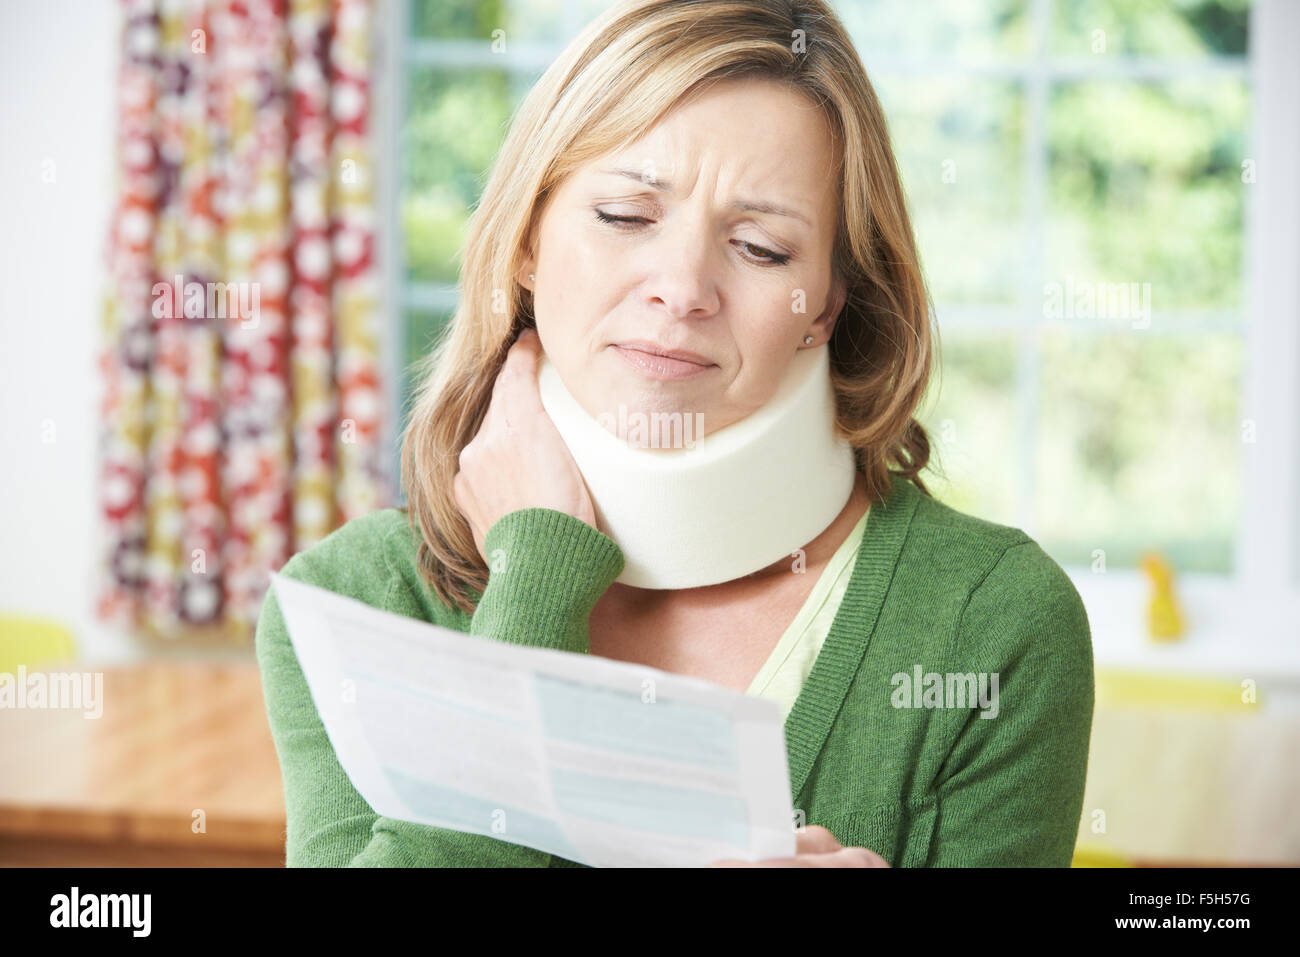 Woman Reading Letter After Receiving Neck Injury - Stock Image